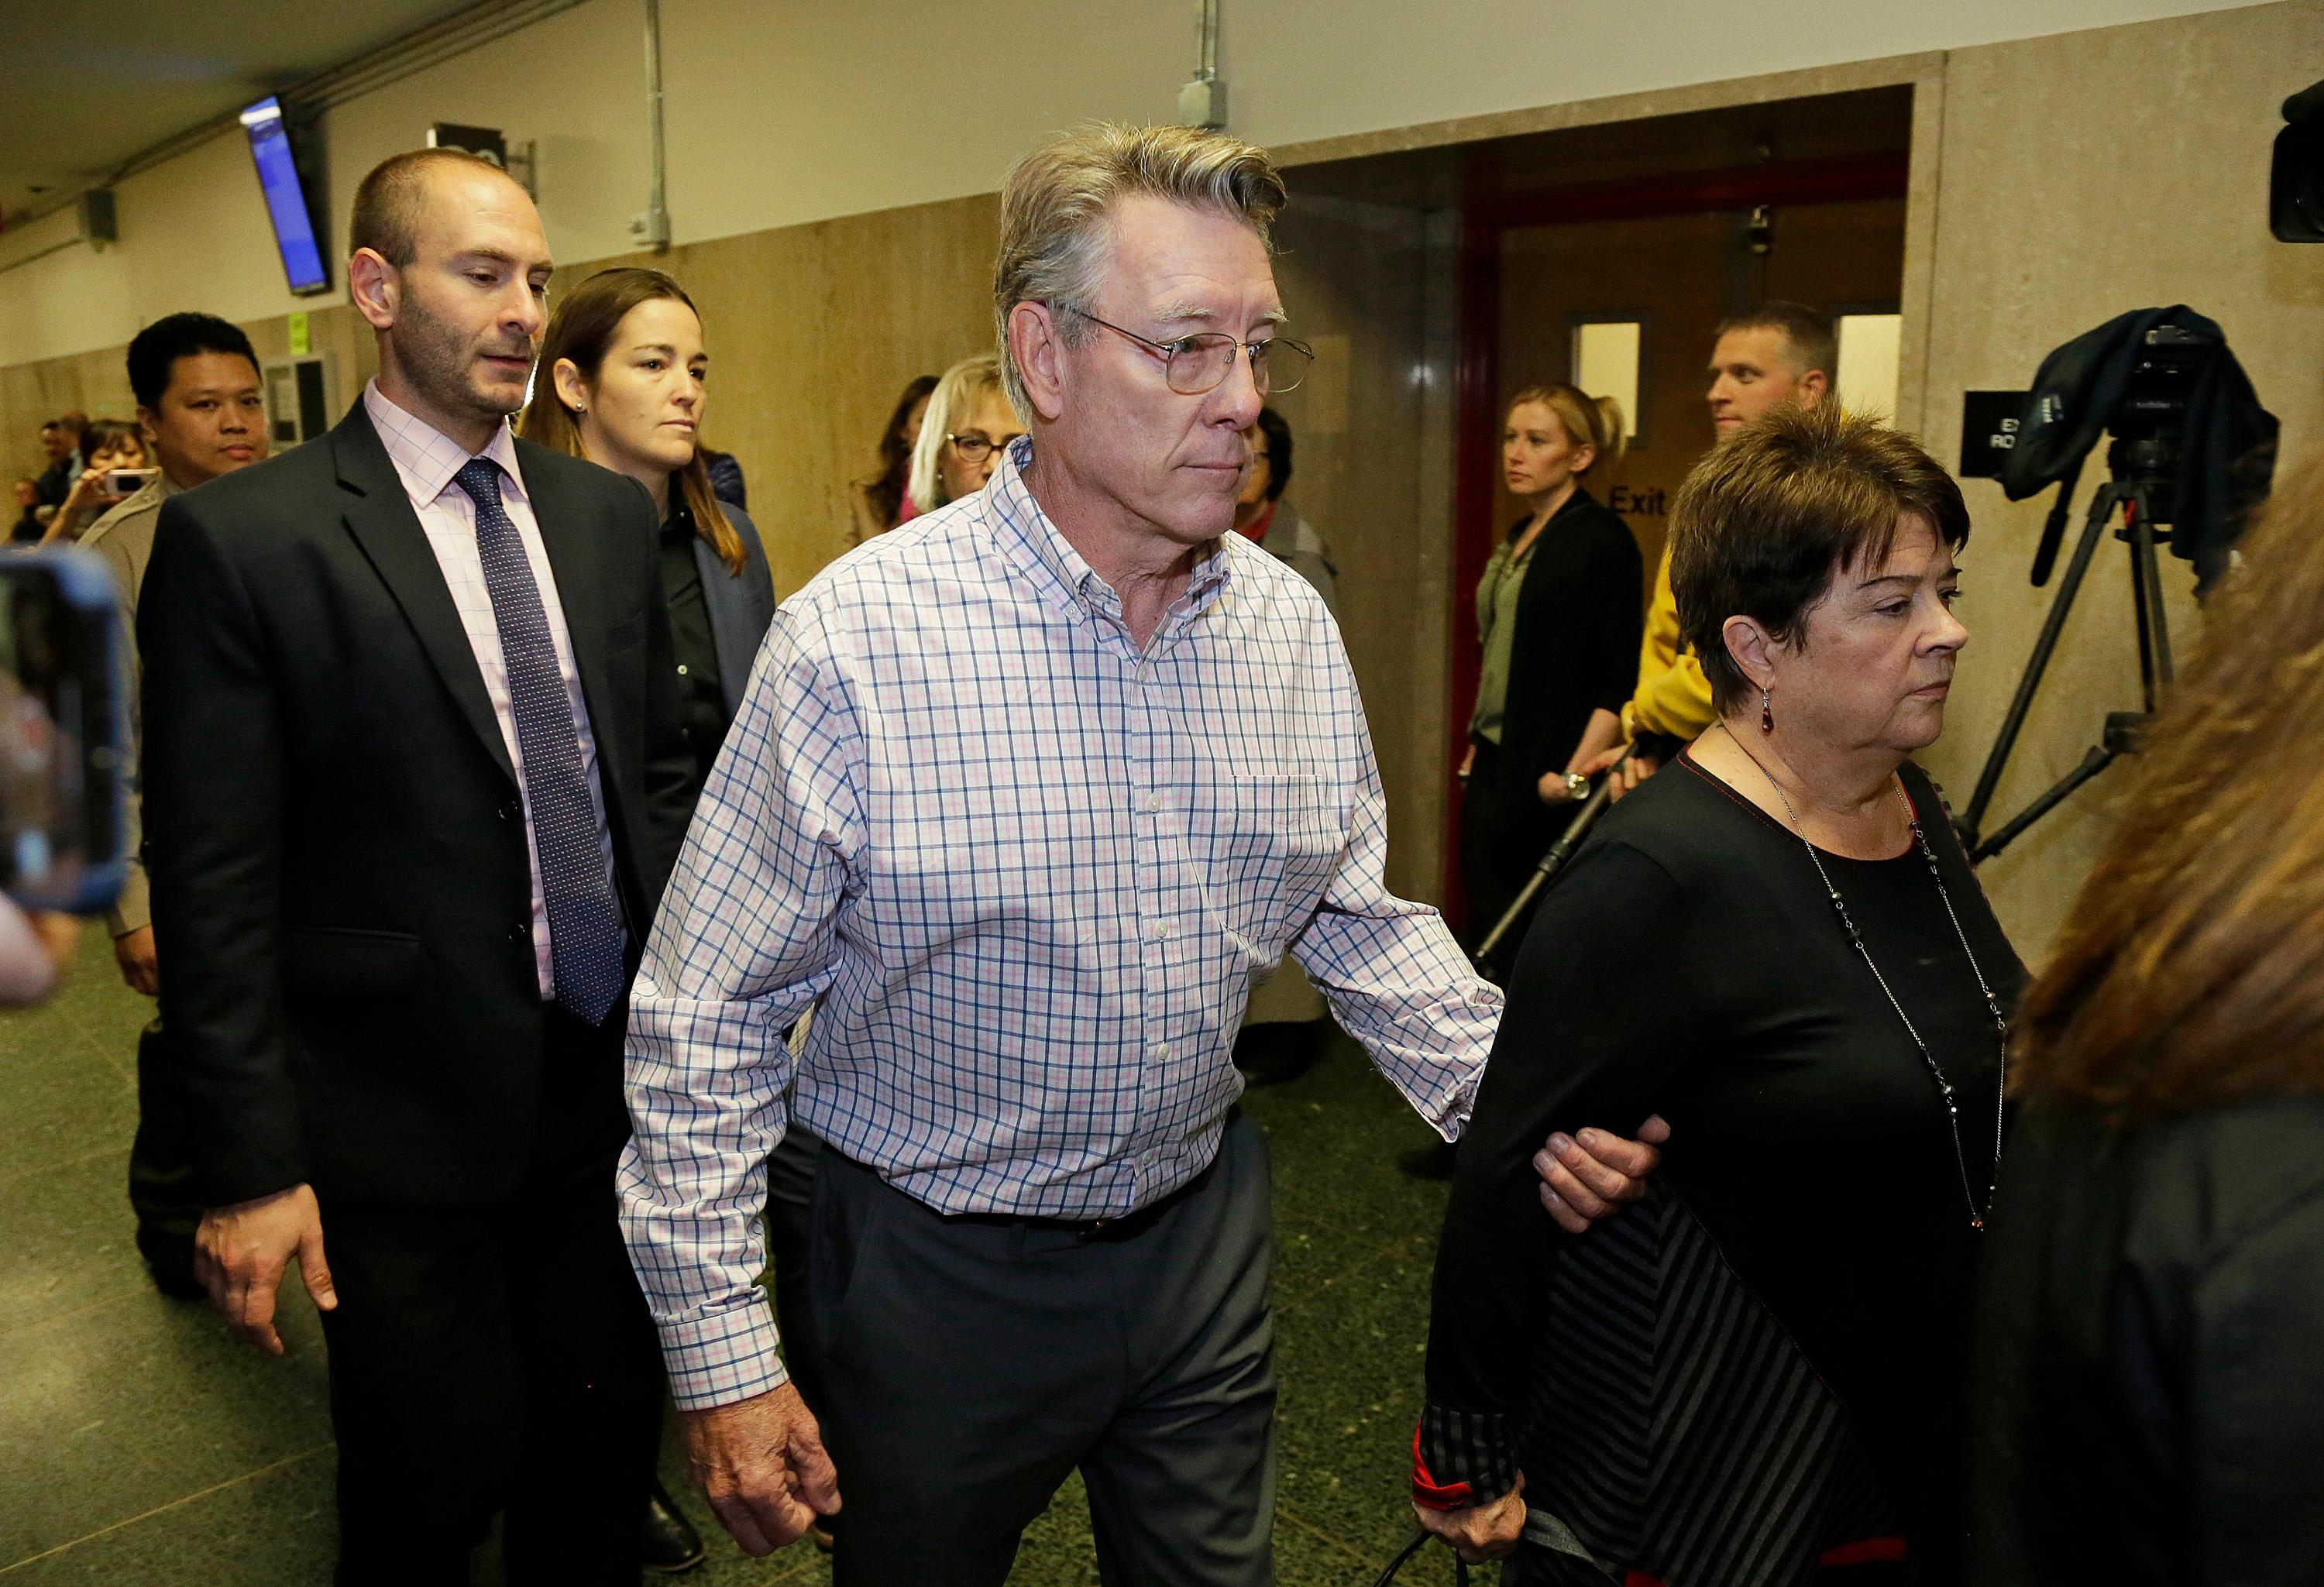 Jim Steinle, center, and Liz Sullivan, right, the parents of Kate Steinle, walk to a court room for closing arguments in the trial of Jose Ines Garcia Zarate accused of killing their daughter, on Monday, Nov. 20, 2017, in San Francisco. Jose Ines Garcia Zarate had been deported five times and was wanted for a sixth deportation when Kate Steinle was fatally shot in the back while walking with her father on the pier. (AP Photo/Eric Risberg)